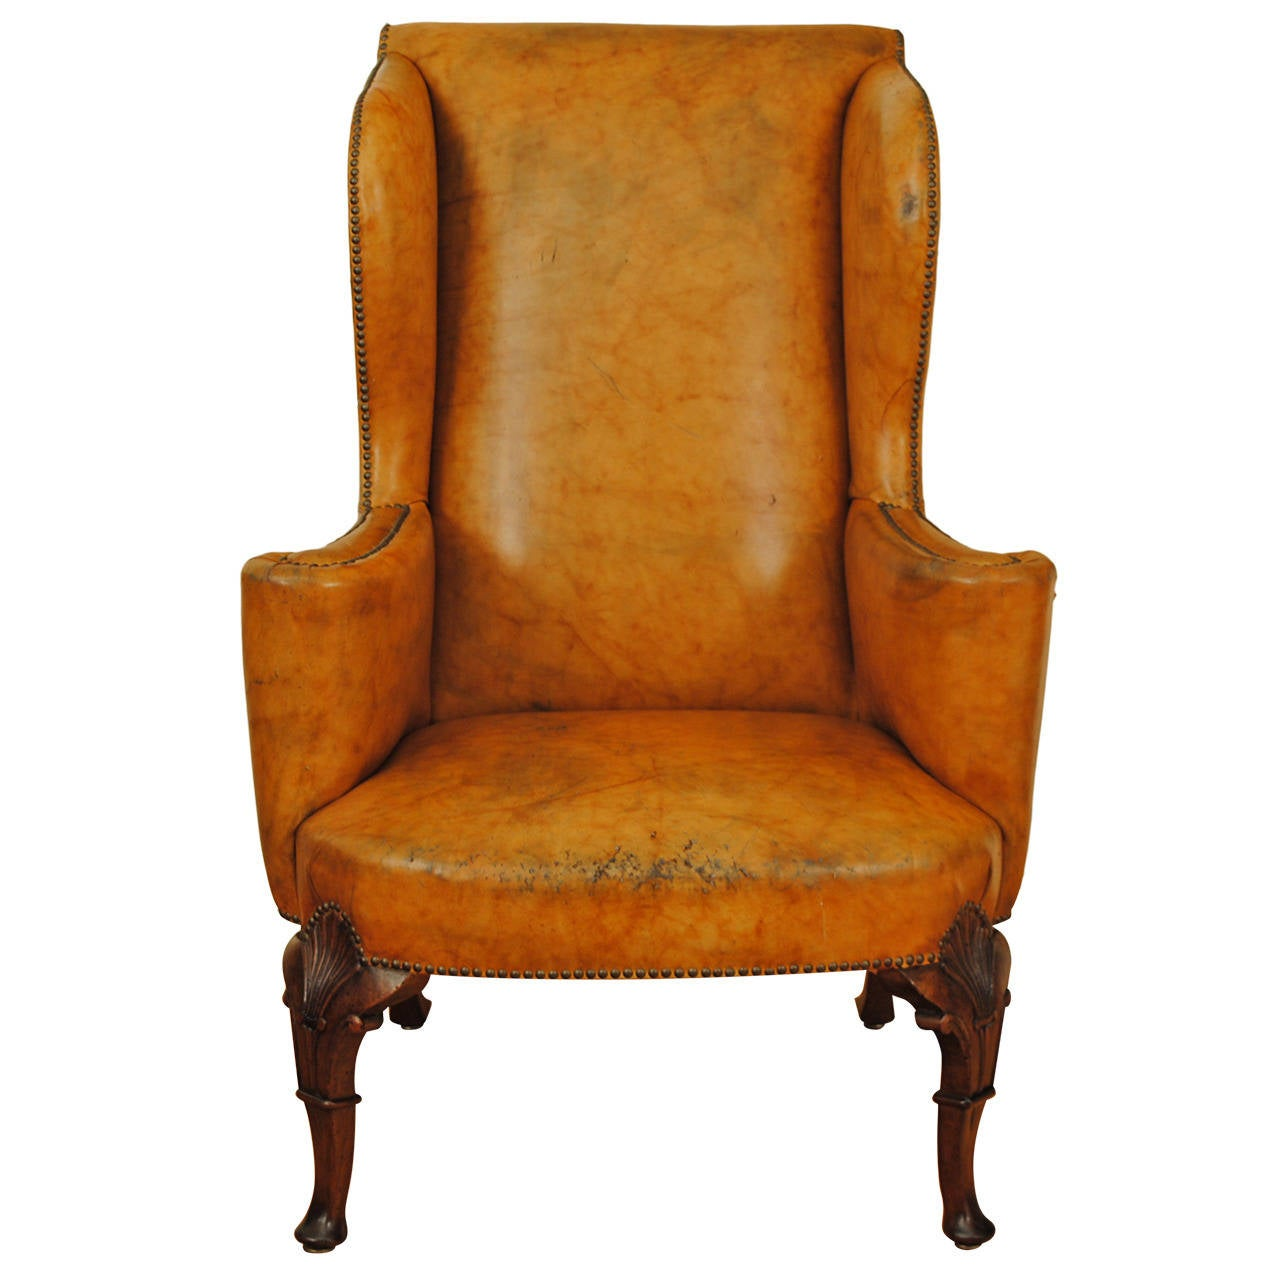 Orange Wingback Chair Carved Walnut Georgian Style Leather Upholstered Wing